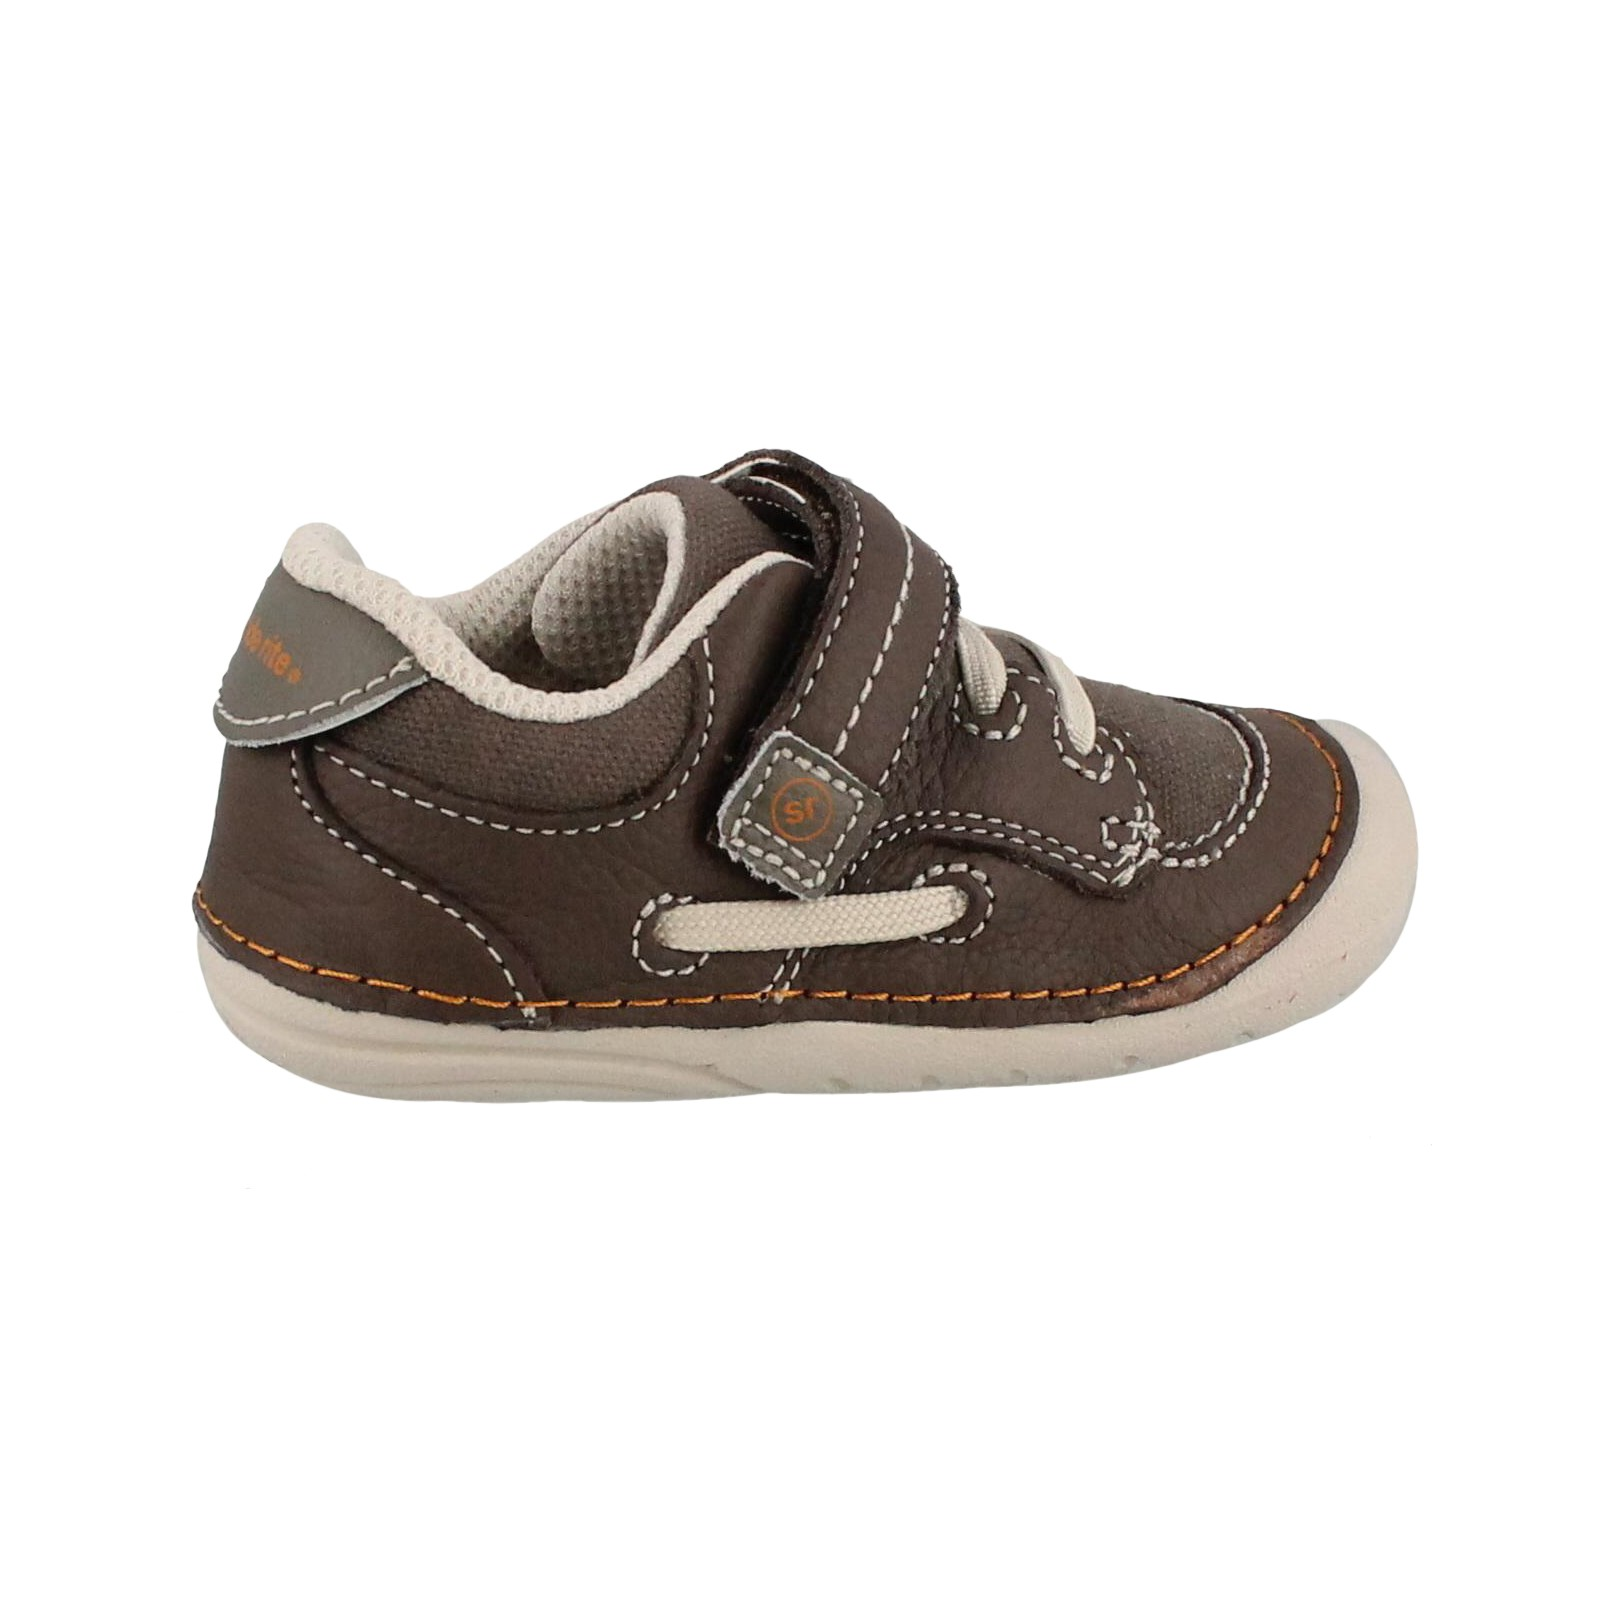 Boy's Stride Rite, SRT SM Dawson Sneaker - Infant